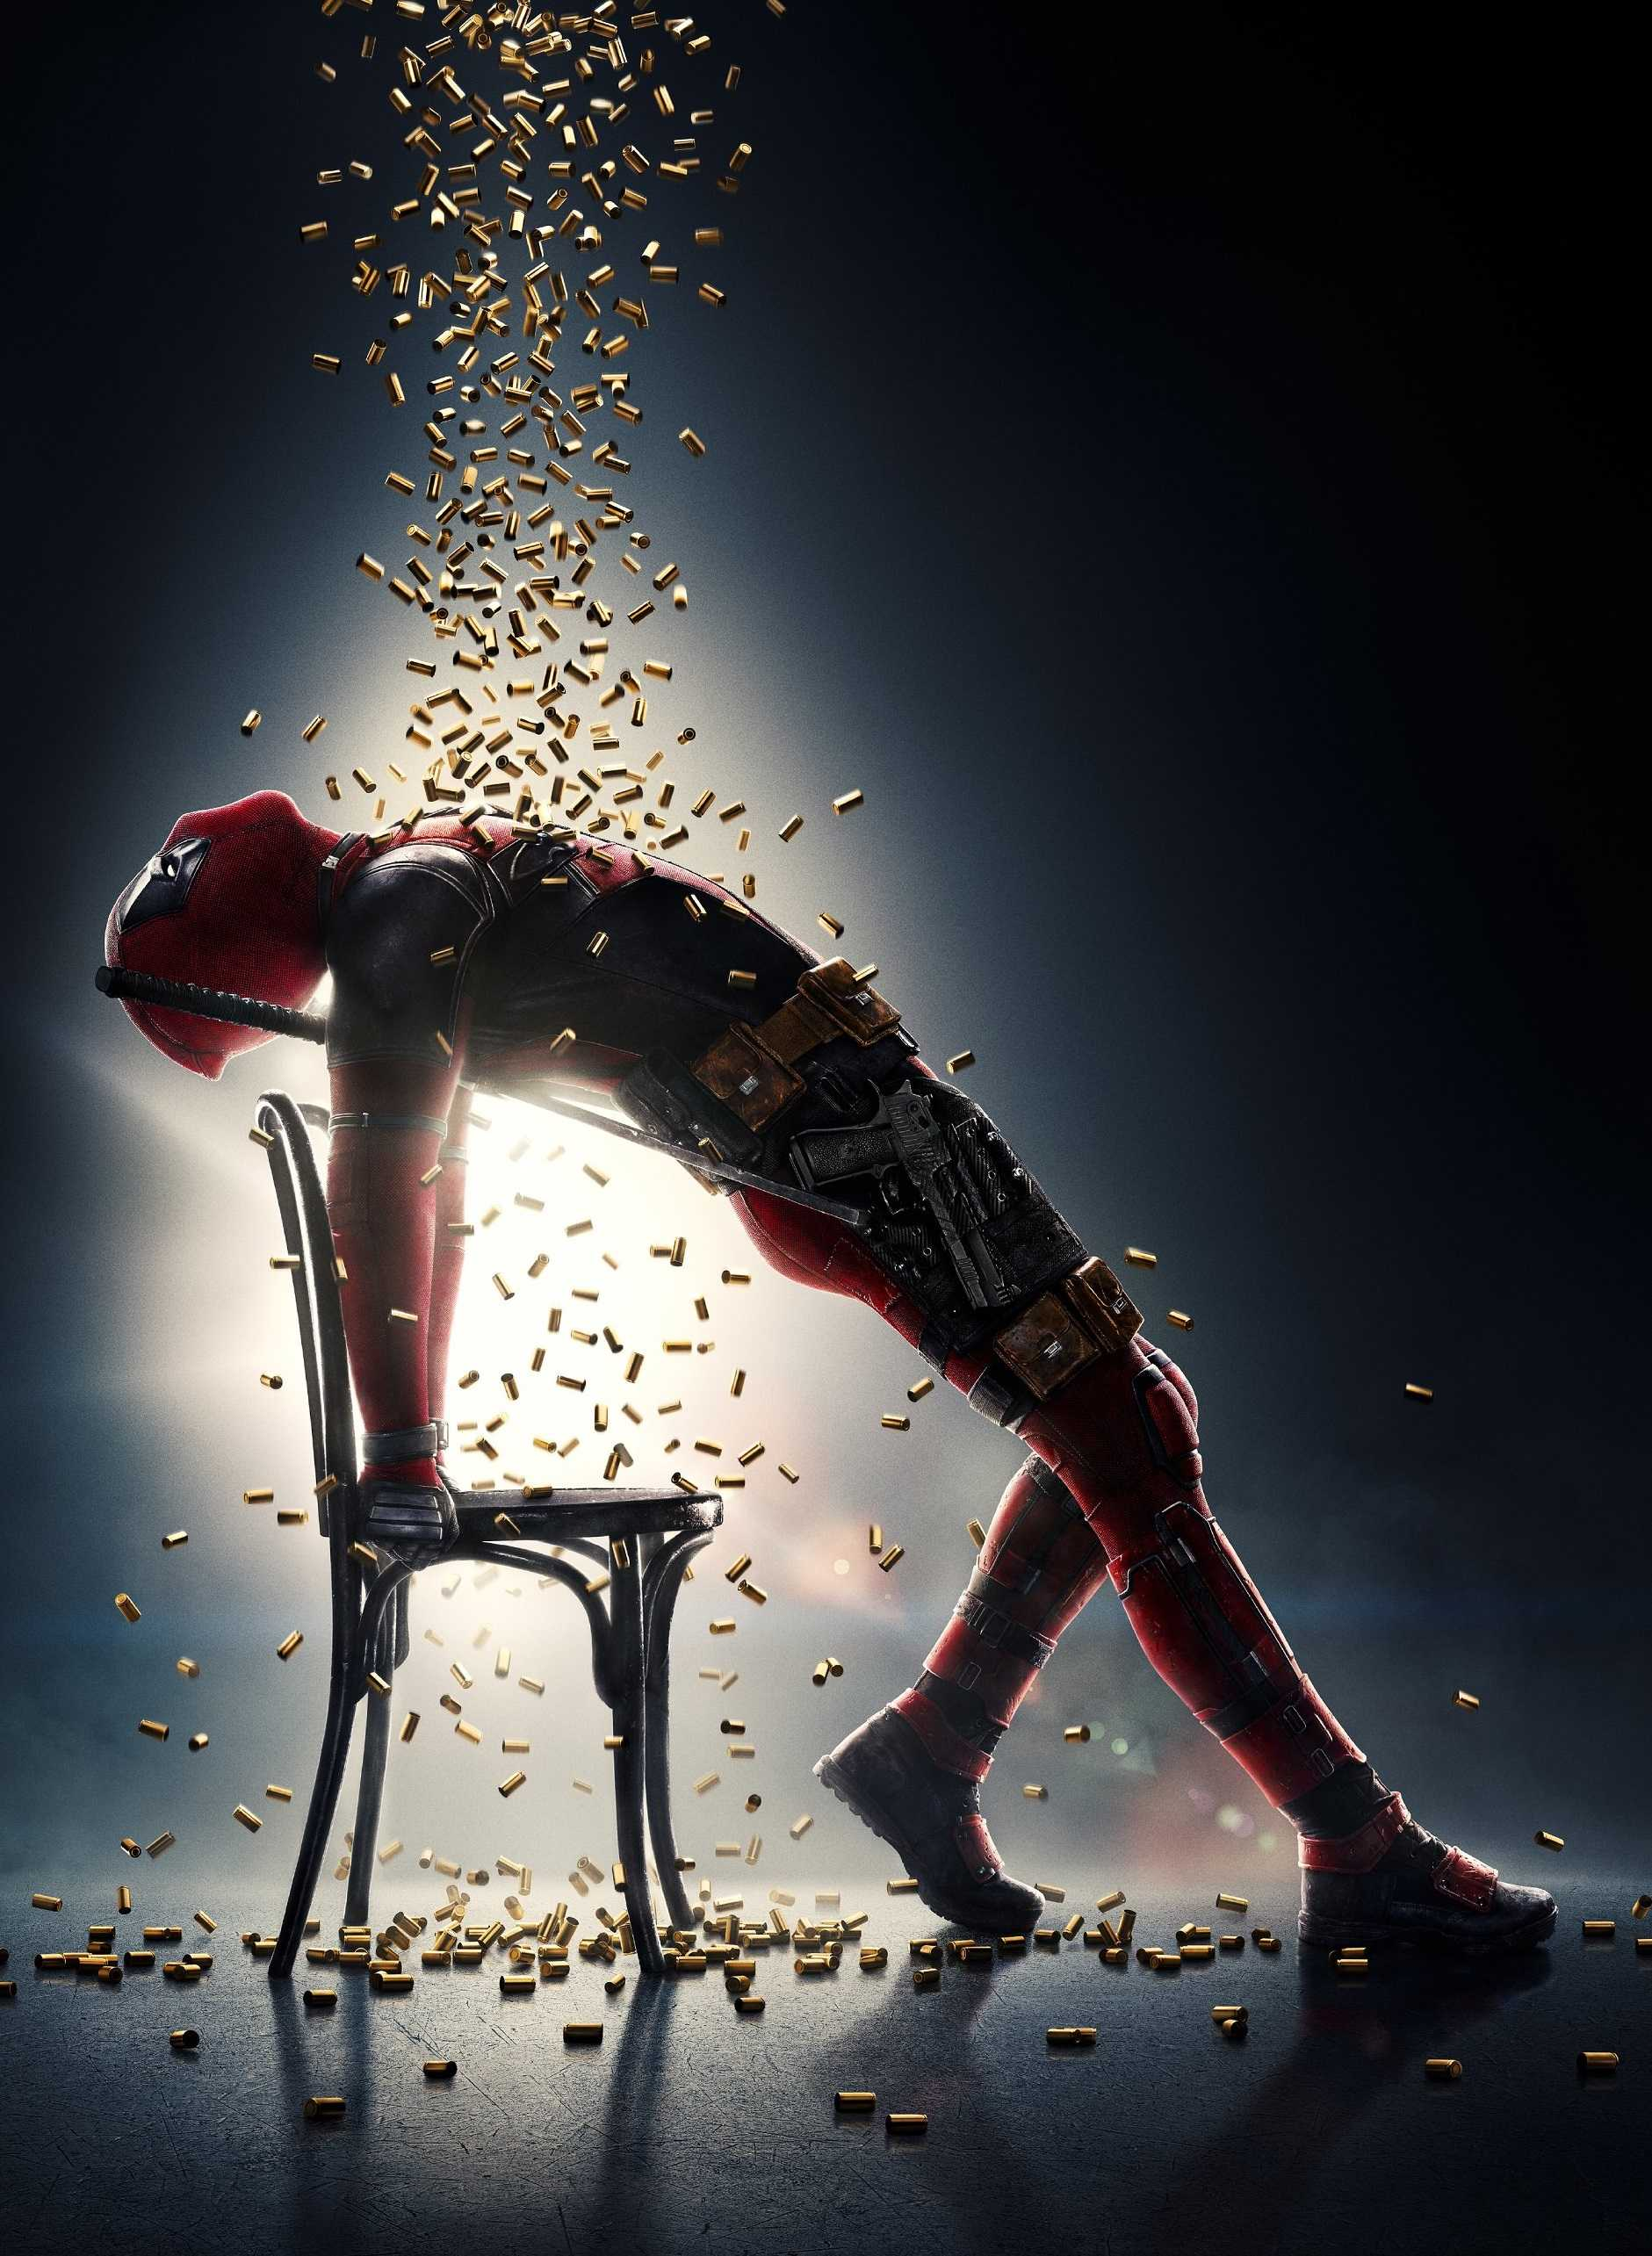 www.saltlake.in-deadpool-2-a-family-film-that-is-frequently-enjoyable-and-entertaining